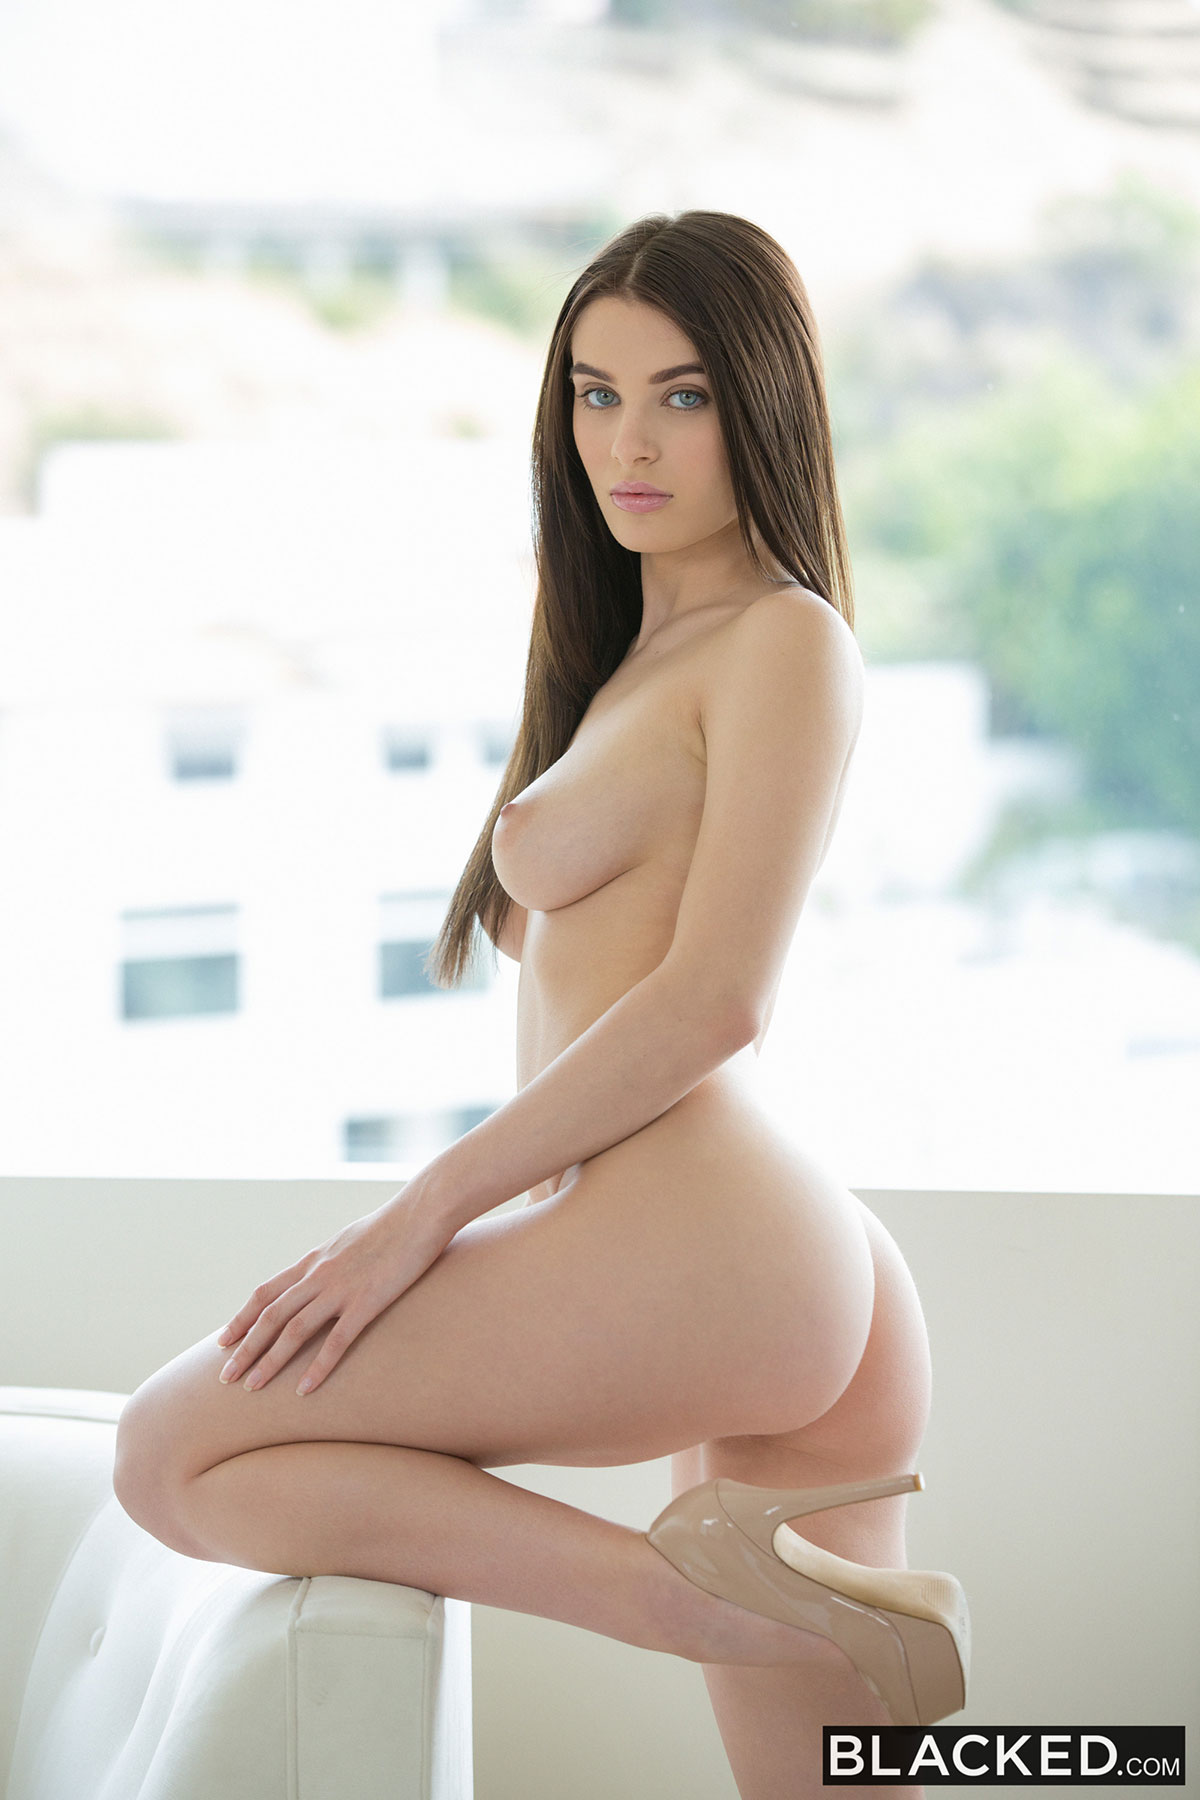 Lana rhoades pictures